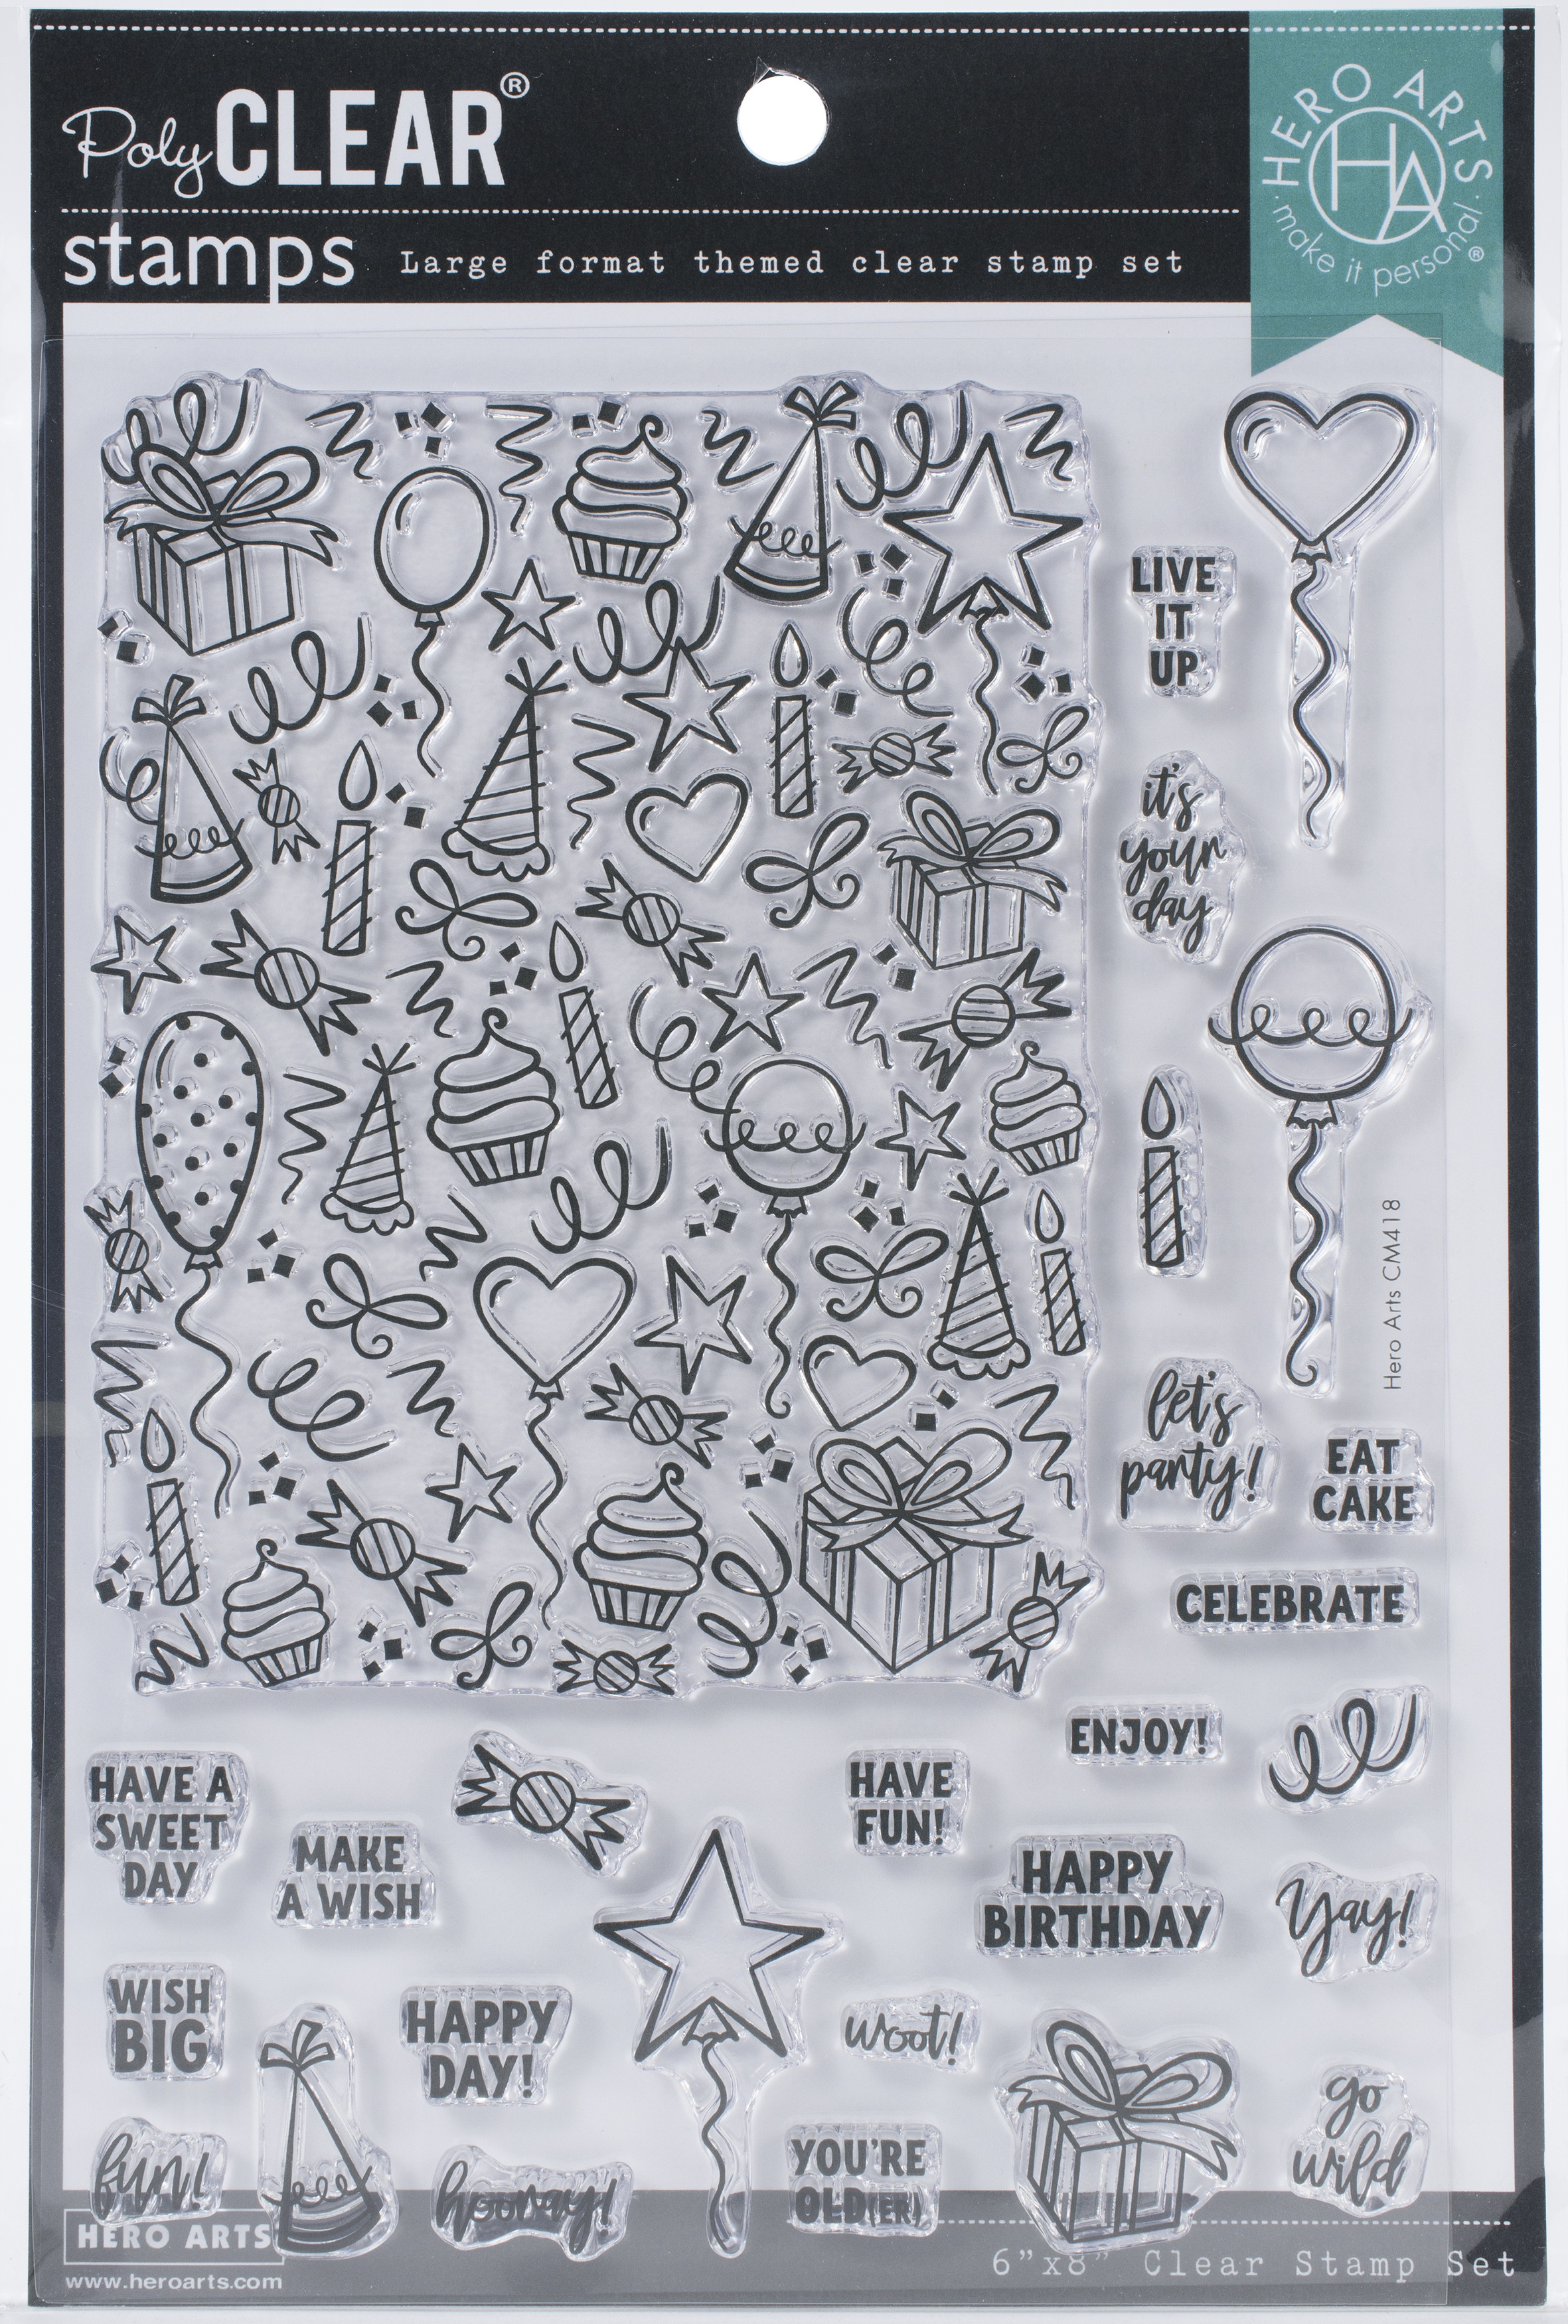 Hero Arts Clear Stamps 4X6-Wish Big Peek-A-Boo Parts